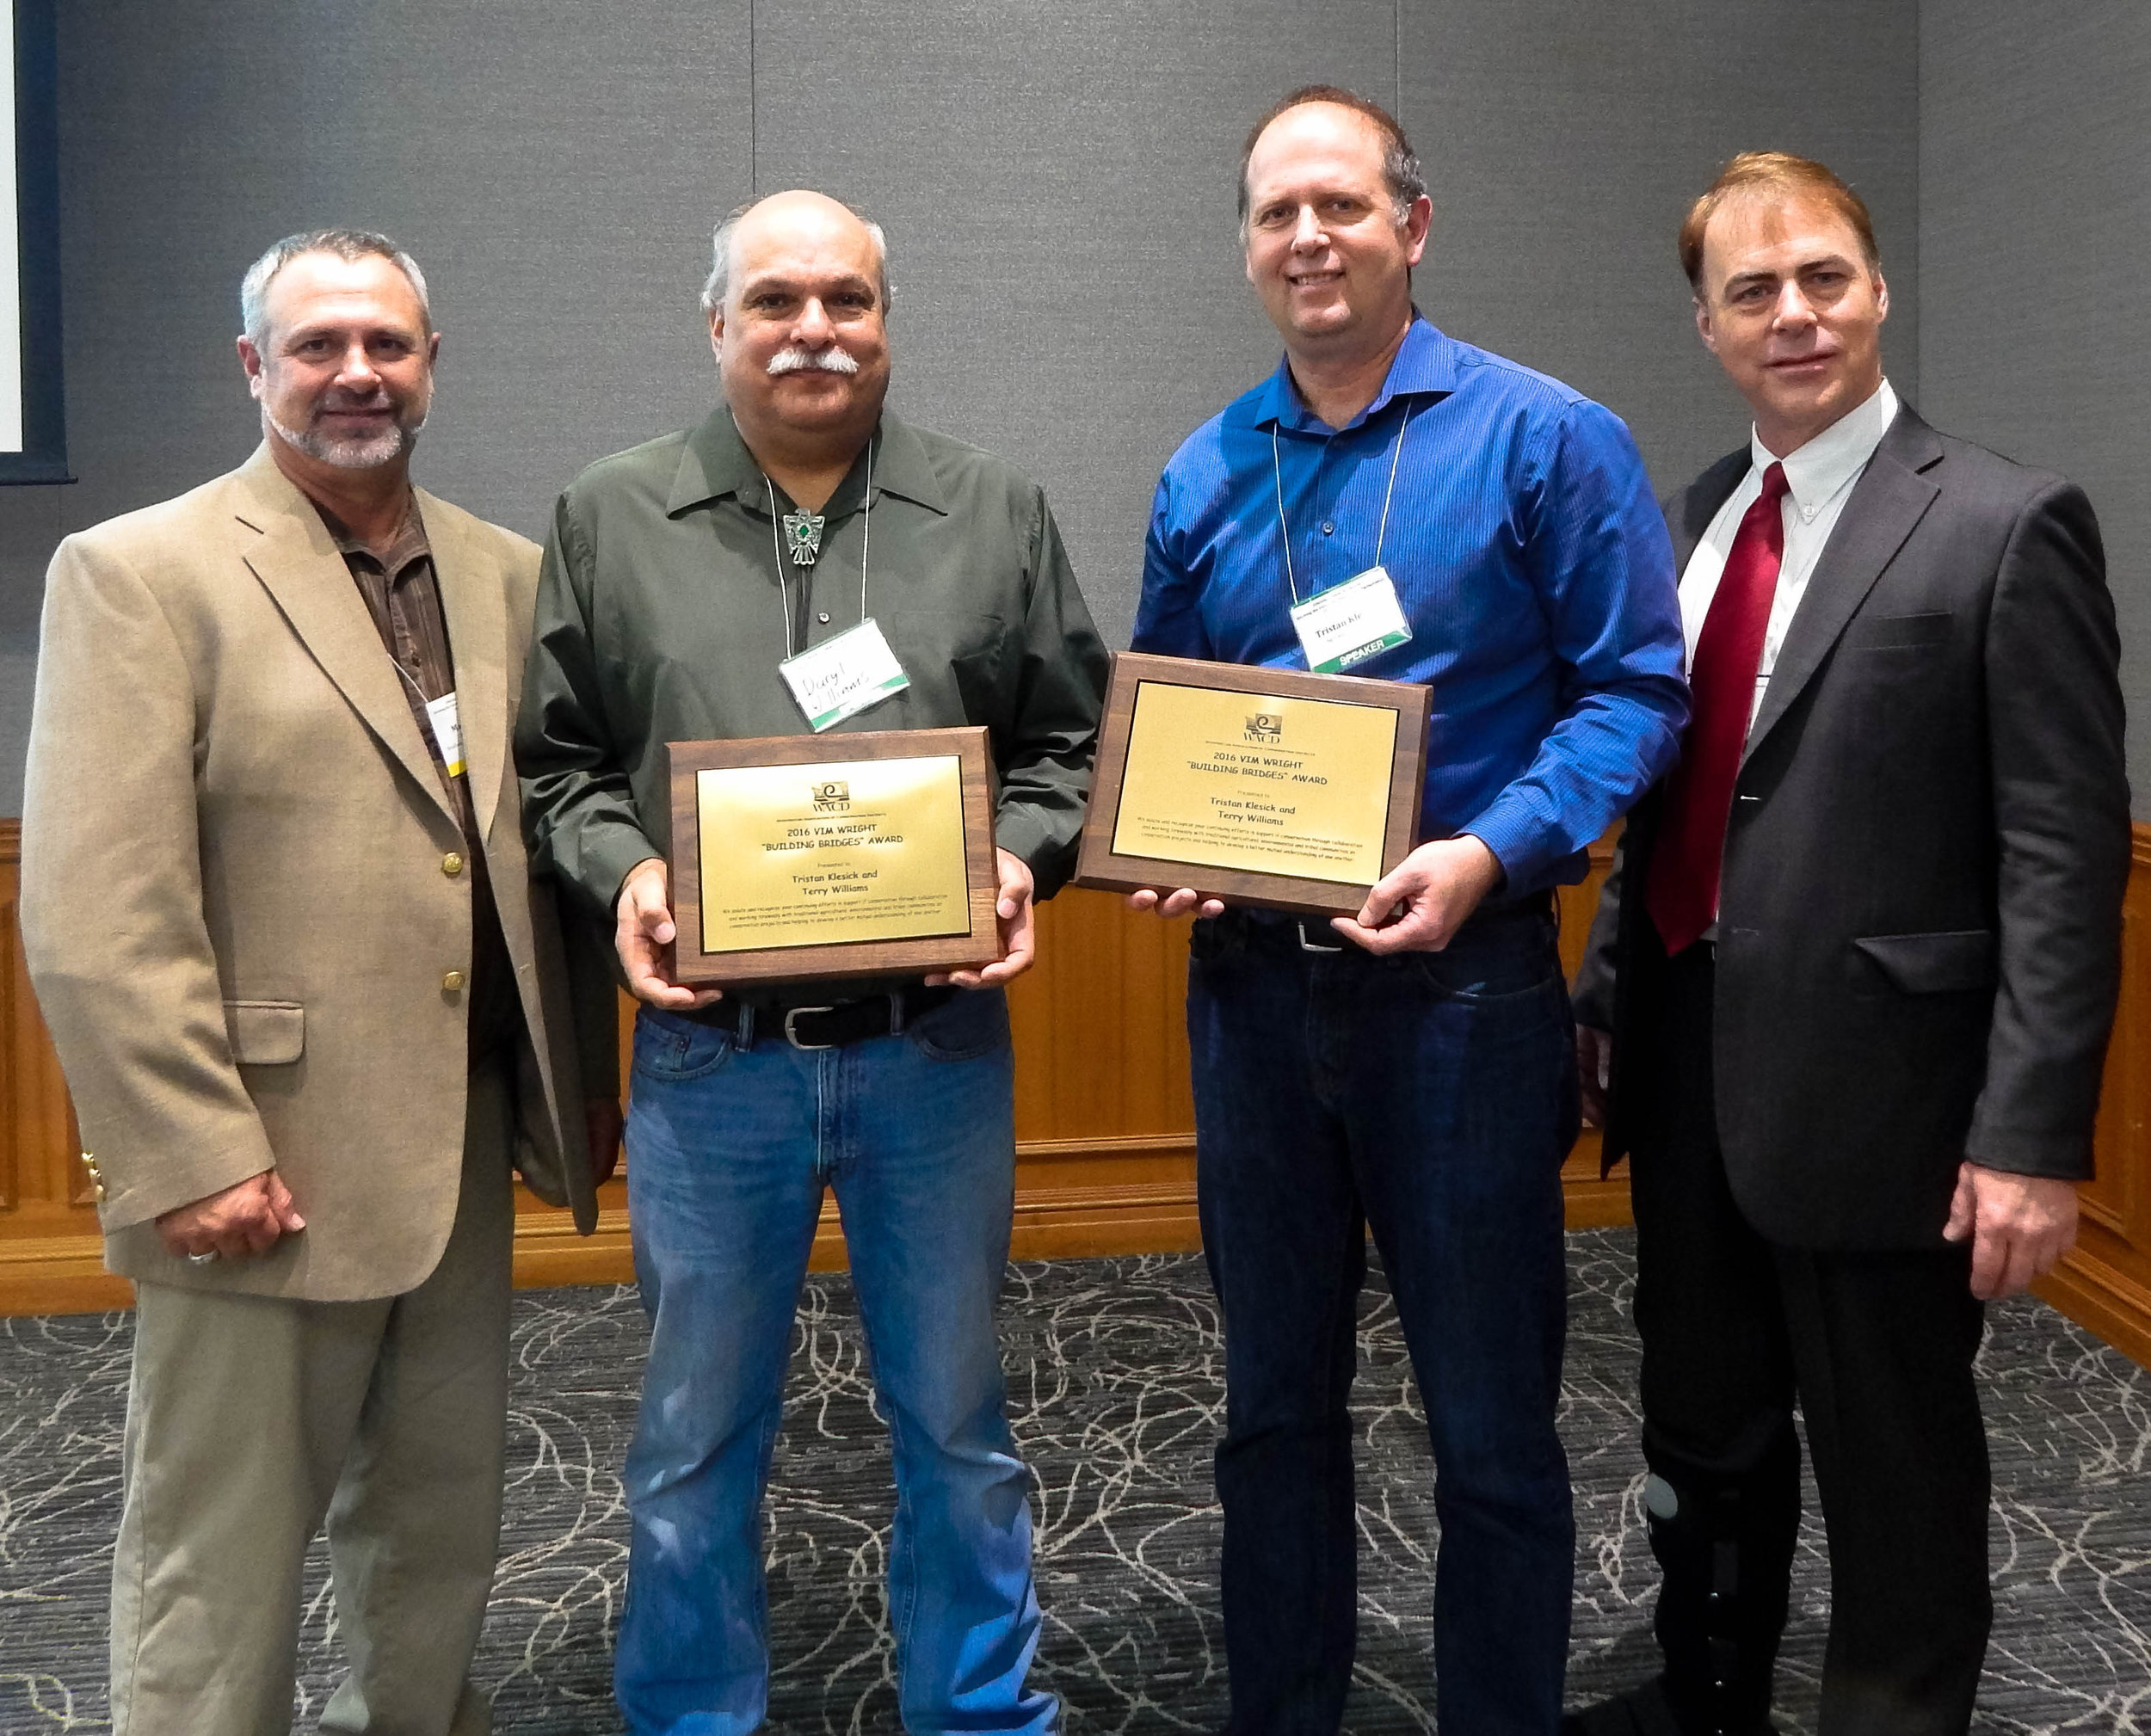 Mark Craven, left, WACD President, and Bob Schroeter, far right, WACD Executive Director, present Terry Williams (accepted by Daryl Williams, second from left) and Tristan Klesick with the 2016 Vim Wright Building Bridges award in Bellingham.     Photo credit:     Candra Grimm,   Legislative and Membership Assistant  ,   Washington Association of Conservation Districts